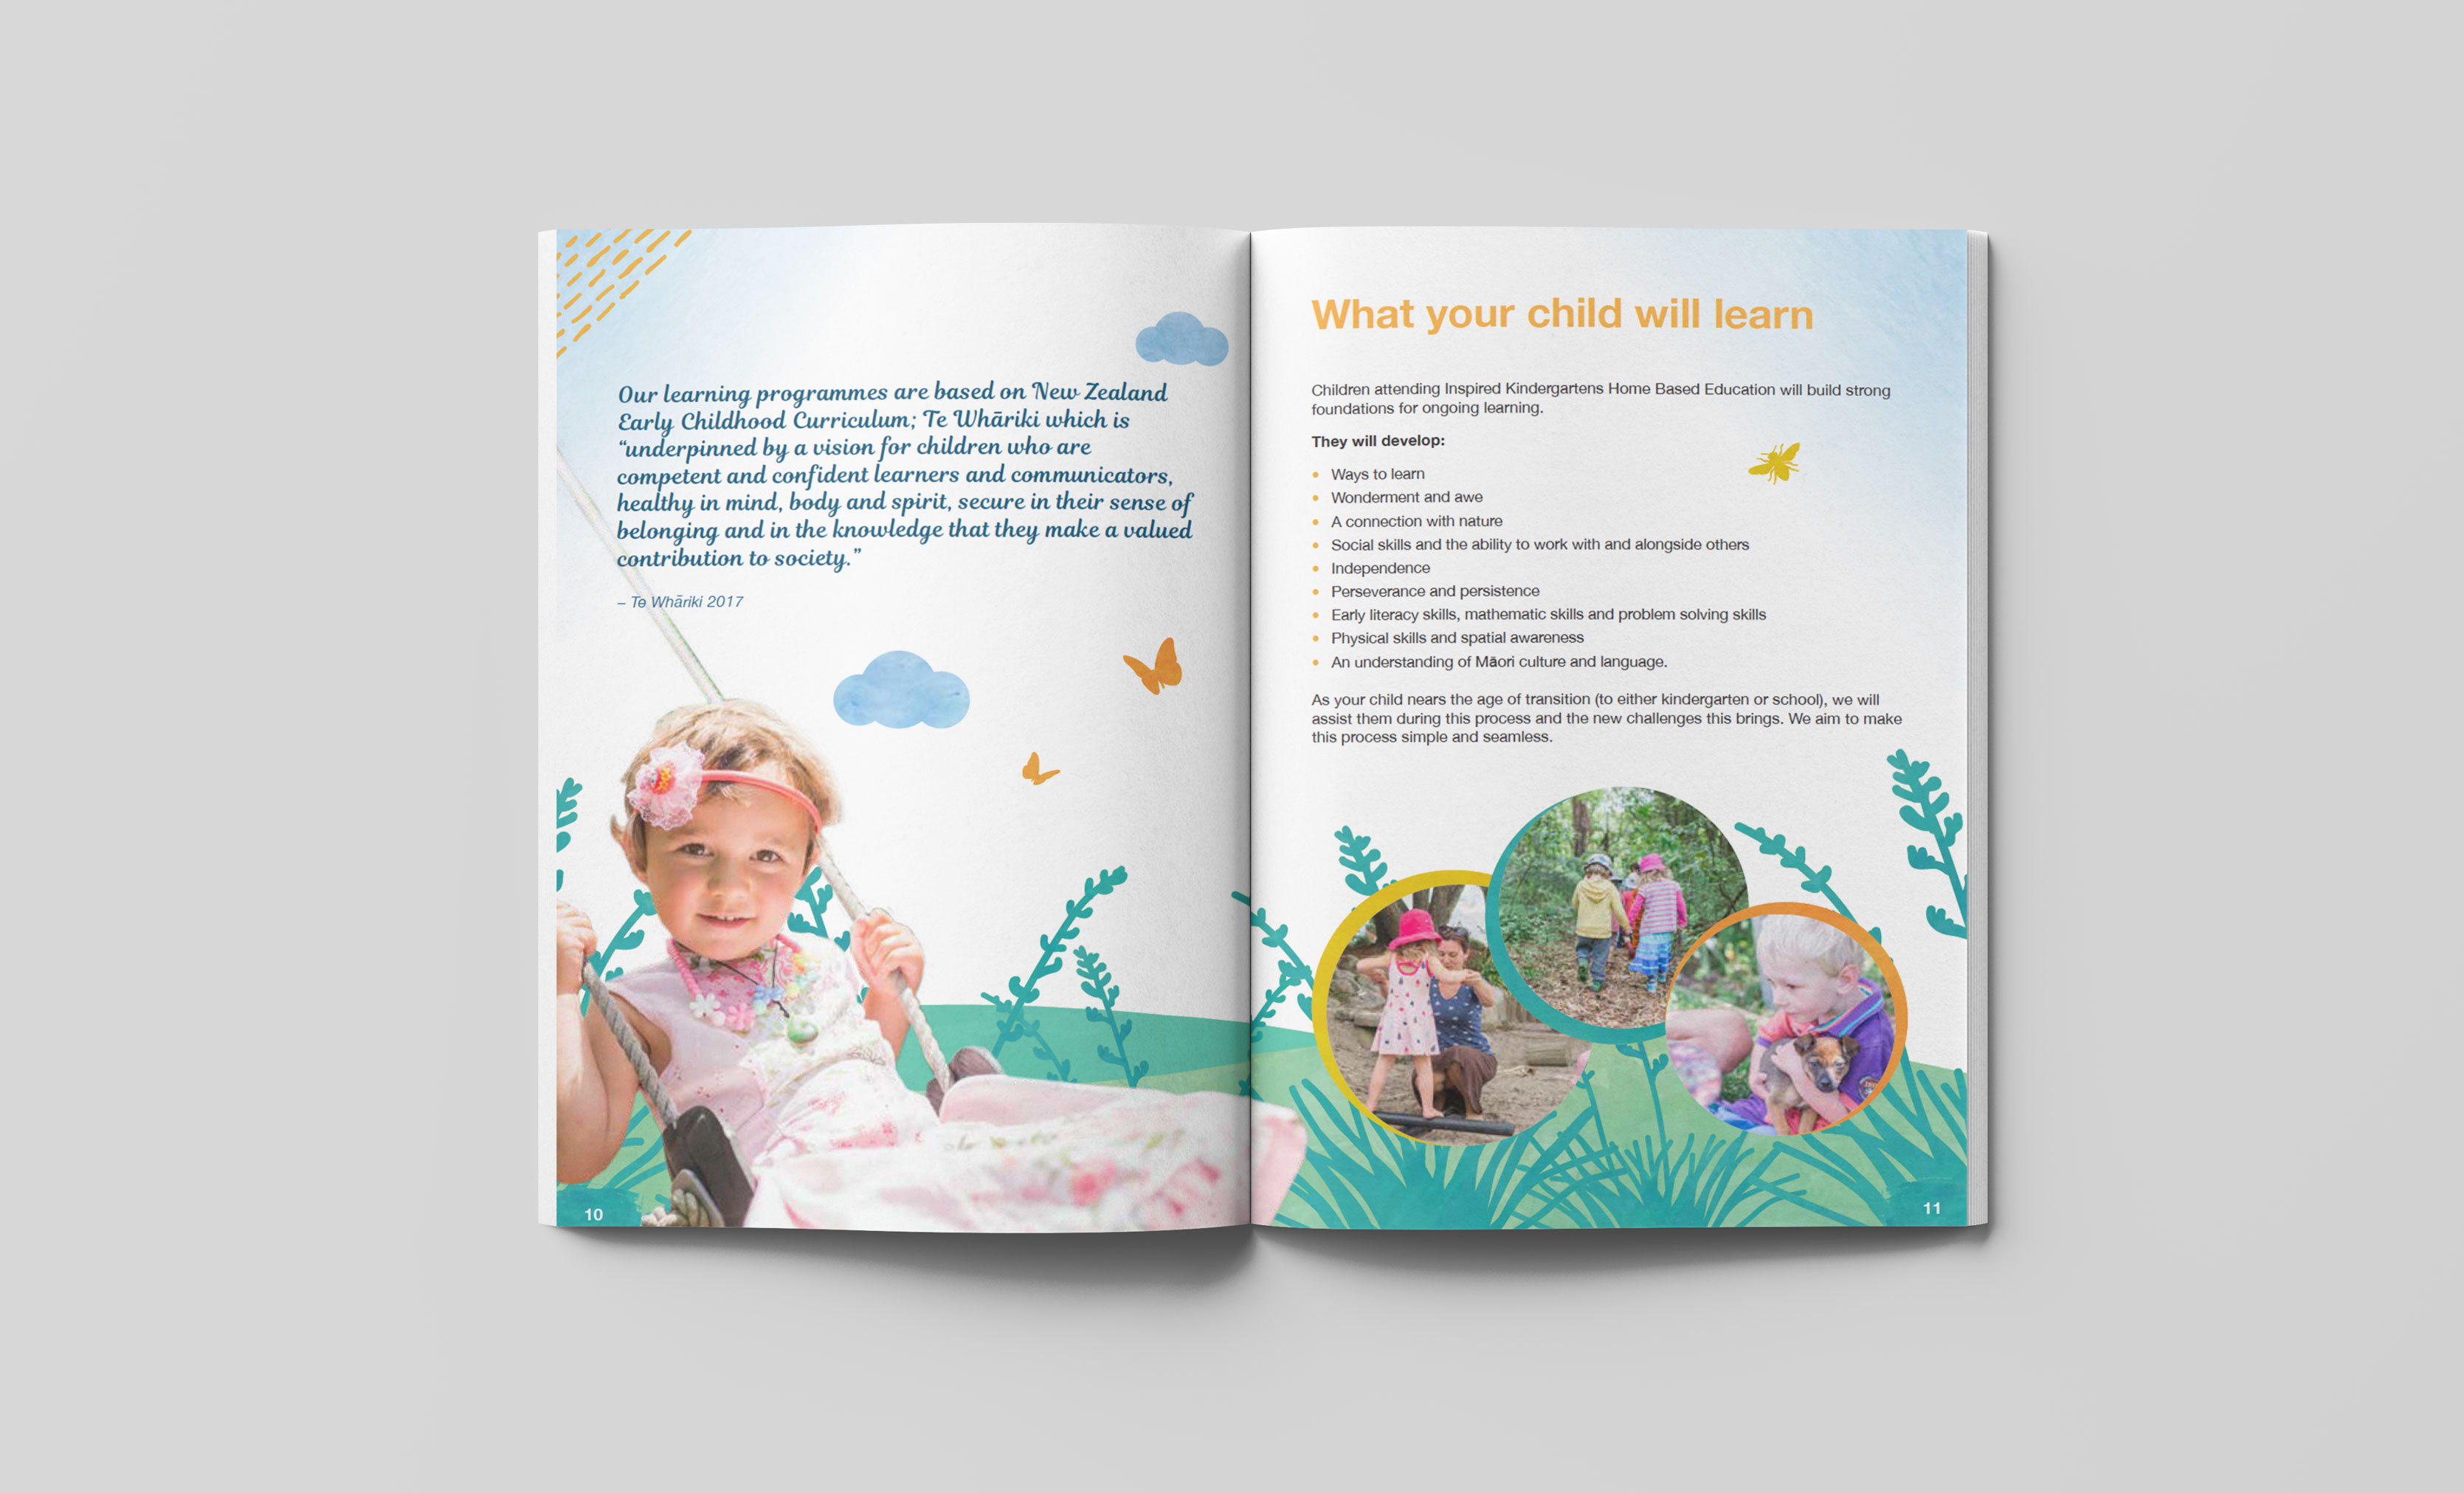 An image from inside the Inspired Kindergartens welcome brochure